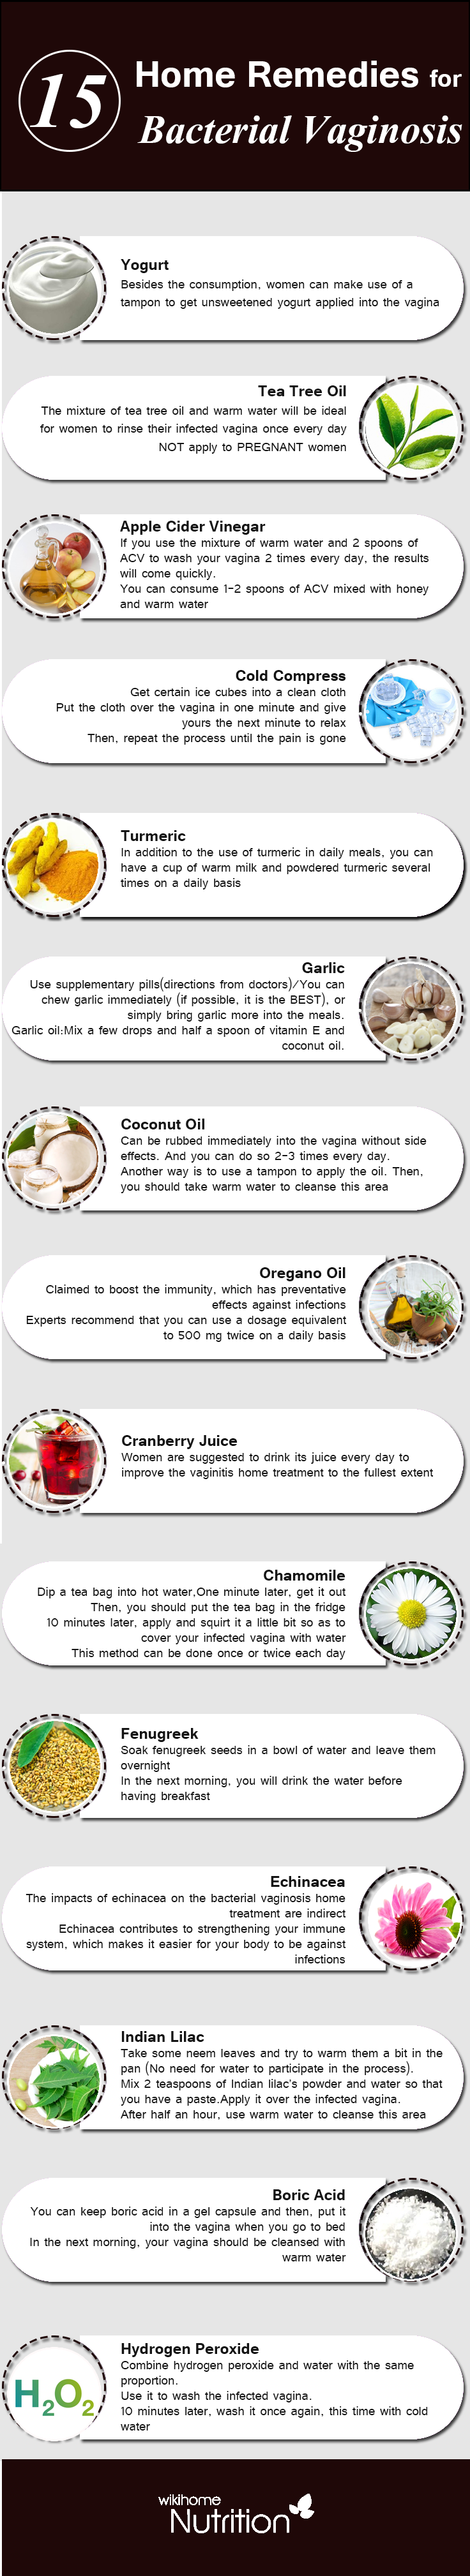 Home Remedies for Bacterial Vaginosis: how to get rid of ...